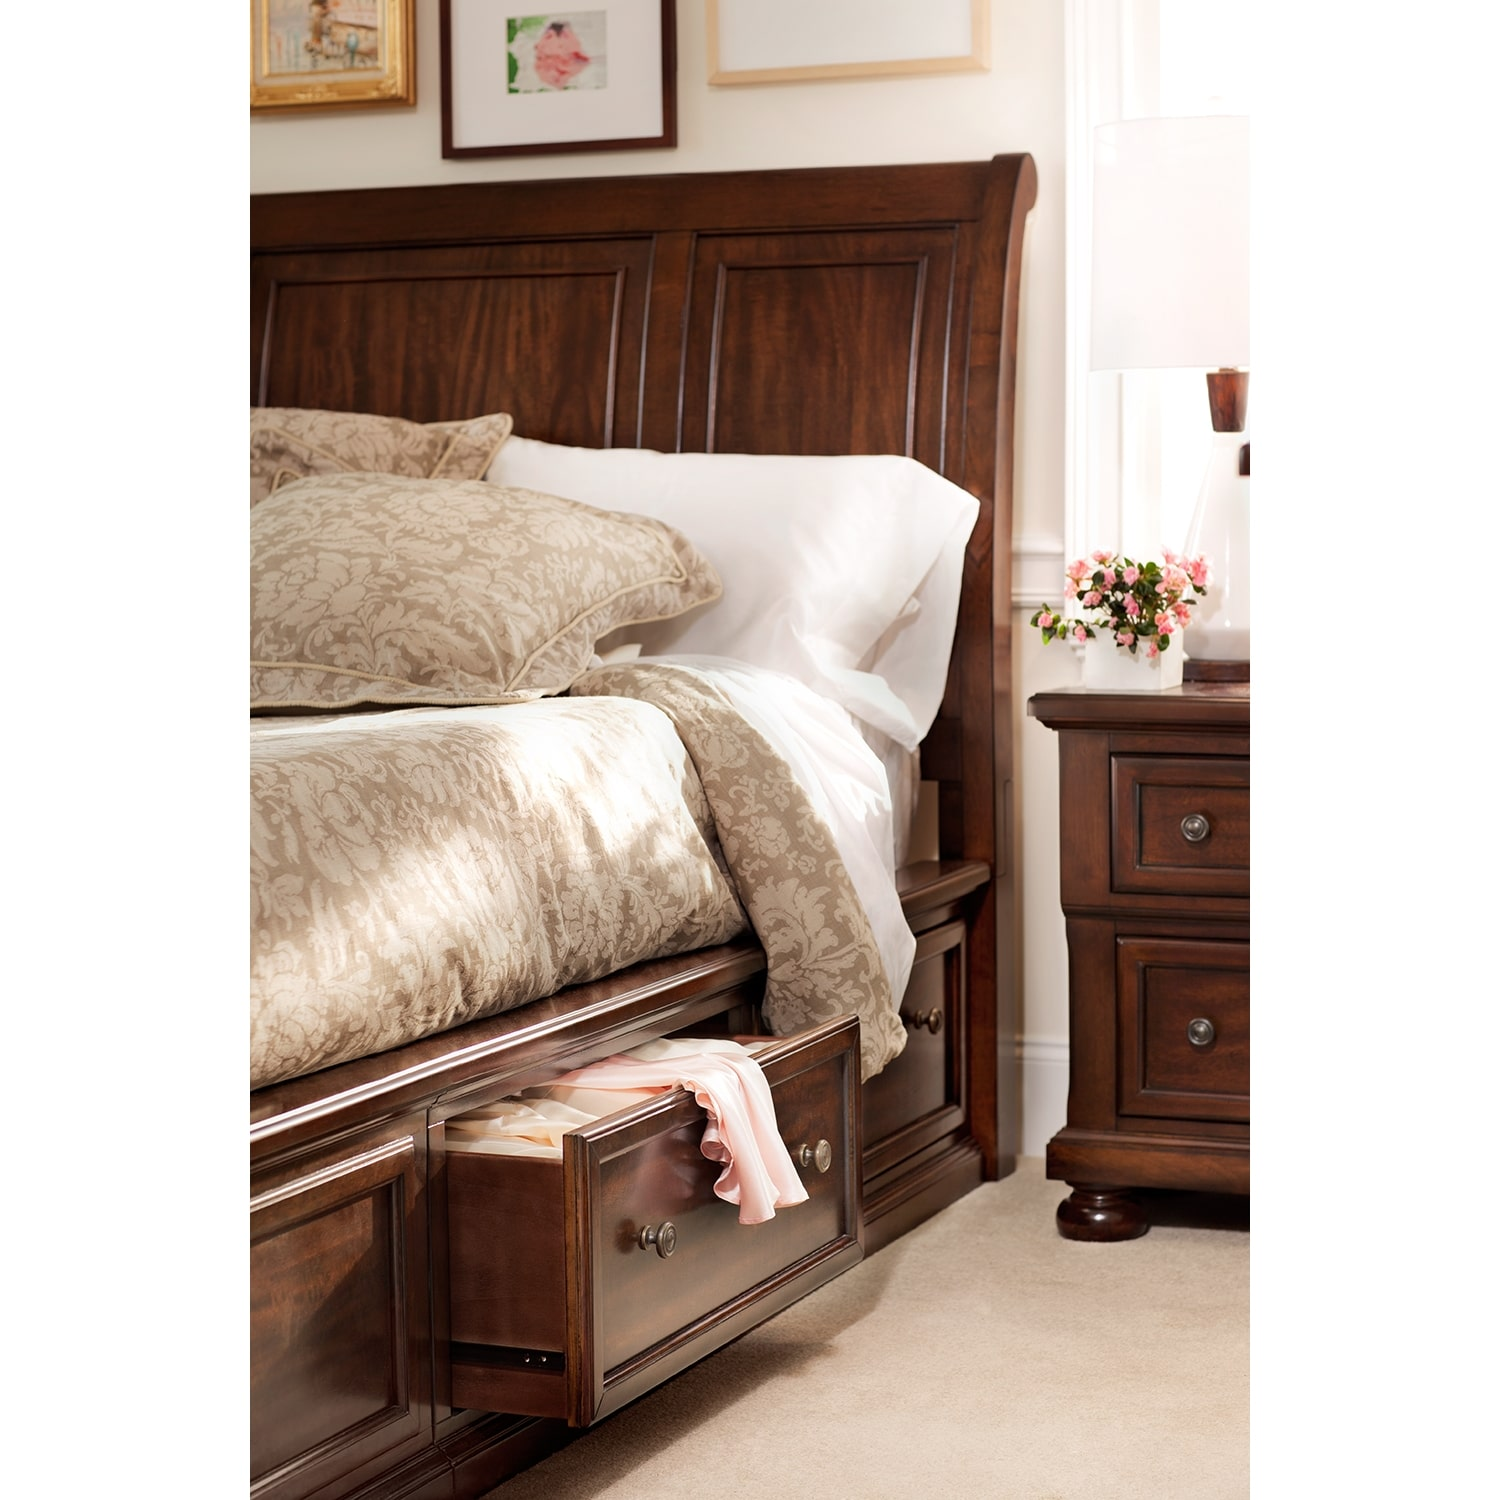 Furniture Com: Hanover Queen Storage Bed - Cherry